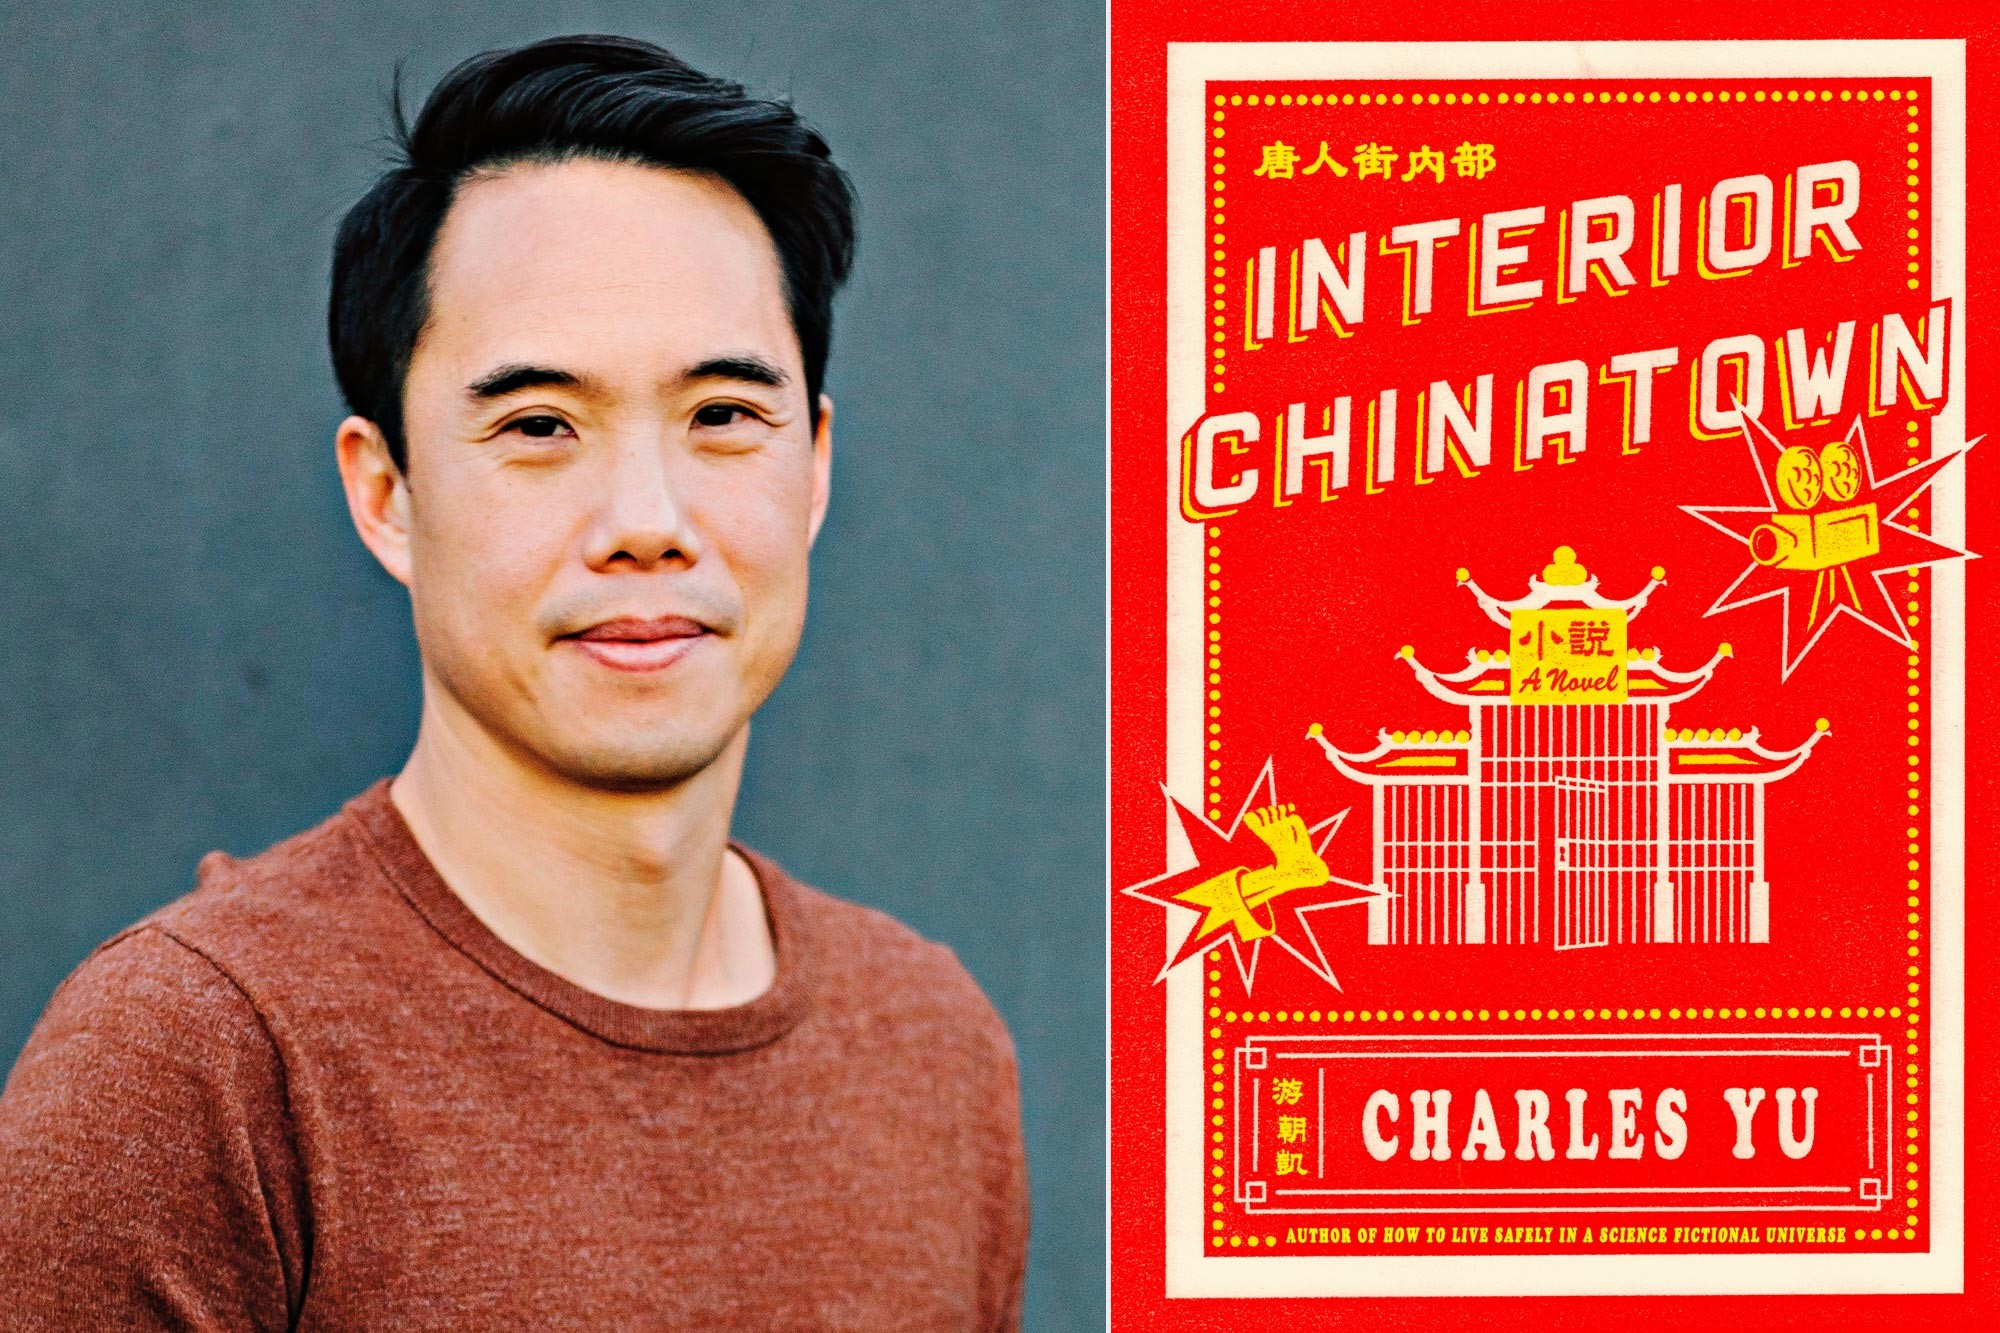 Social Justice Reading Club: Book Discussion of Interior Chinatown by Charles Yu